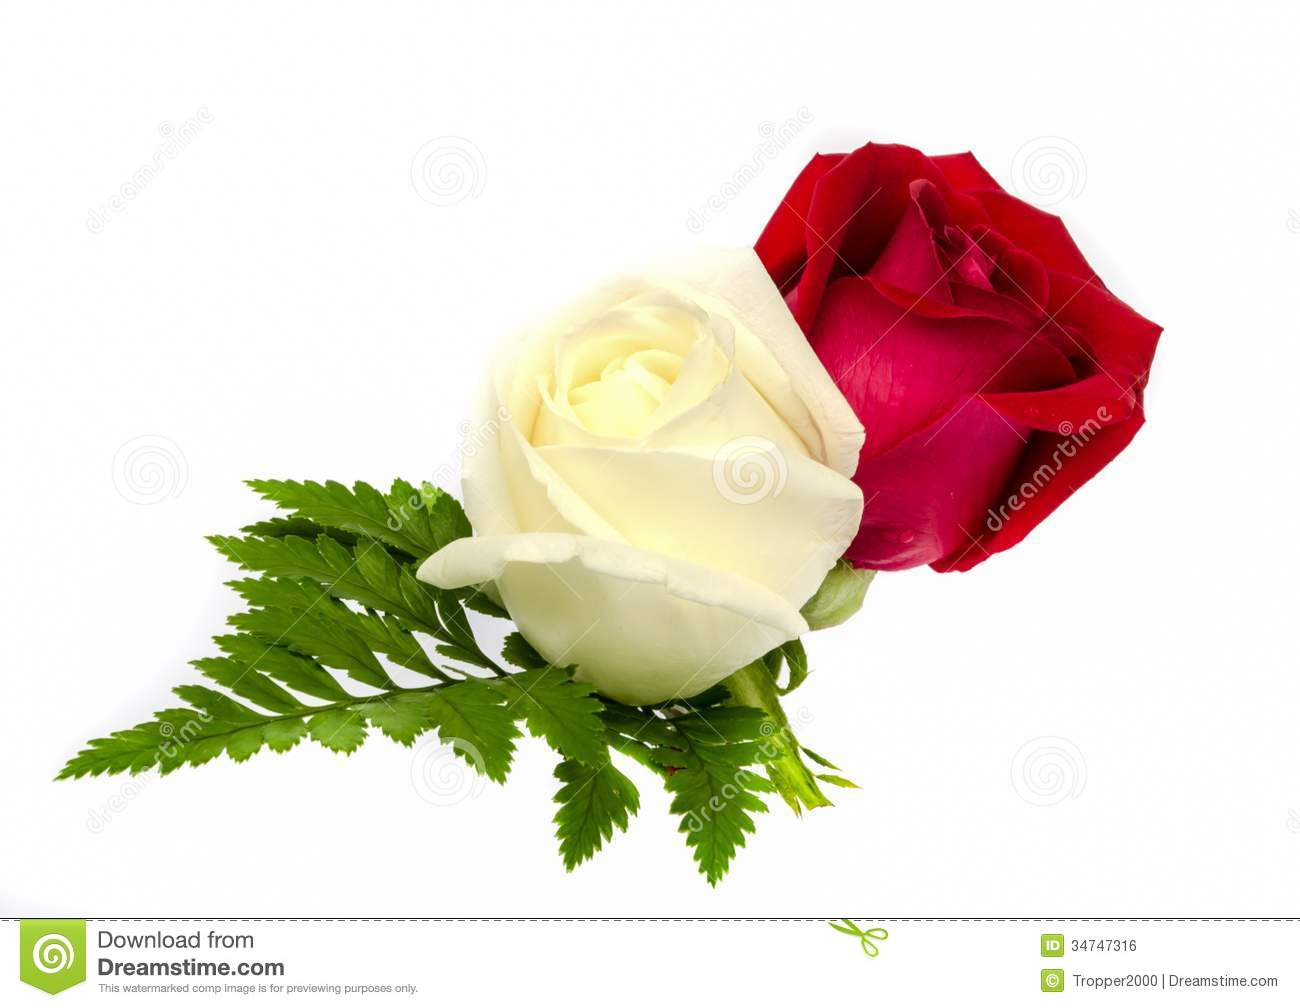 Beautiful Single Red Rose Flower Isolated Royalty Free: Rose Flower. Royalty Free Stock Image